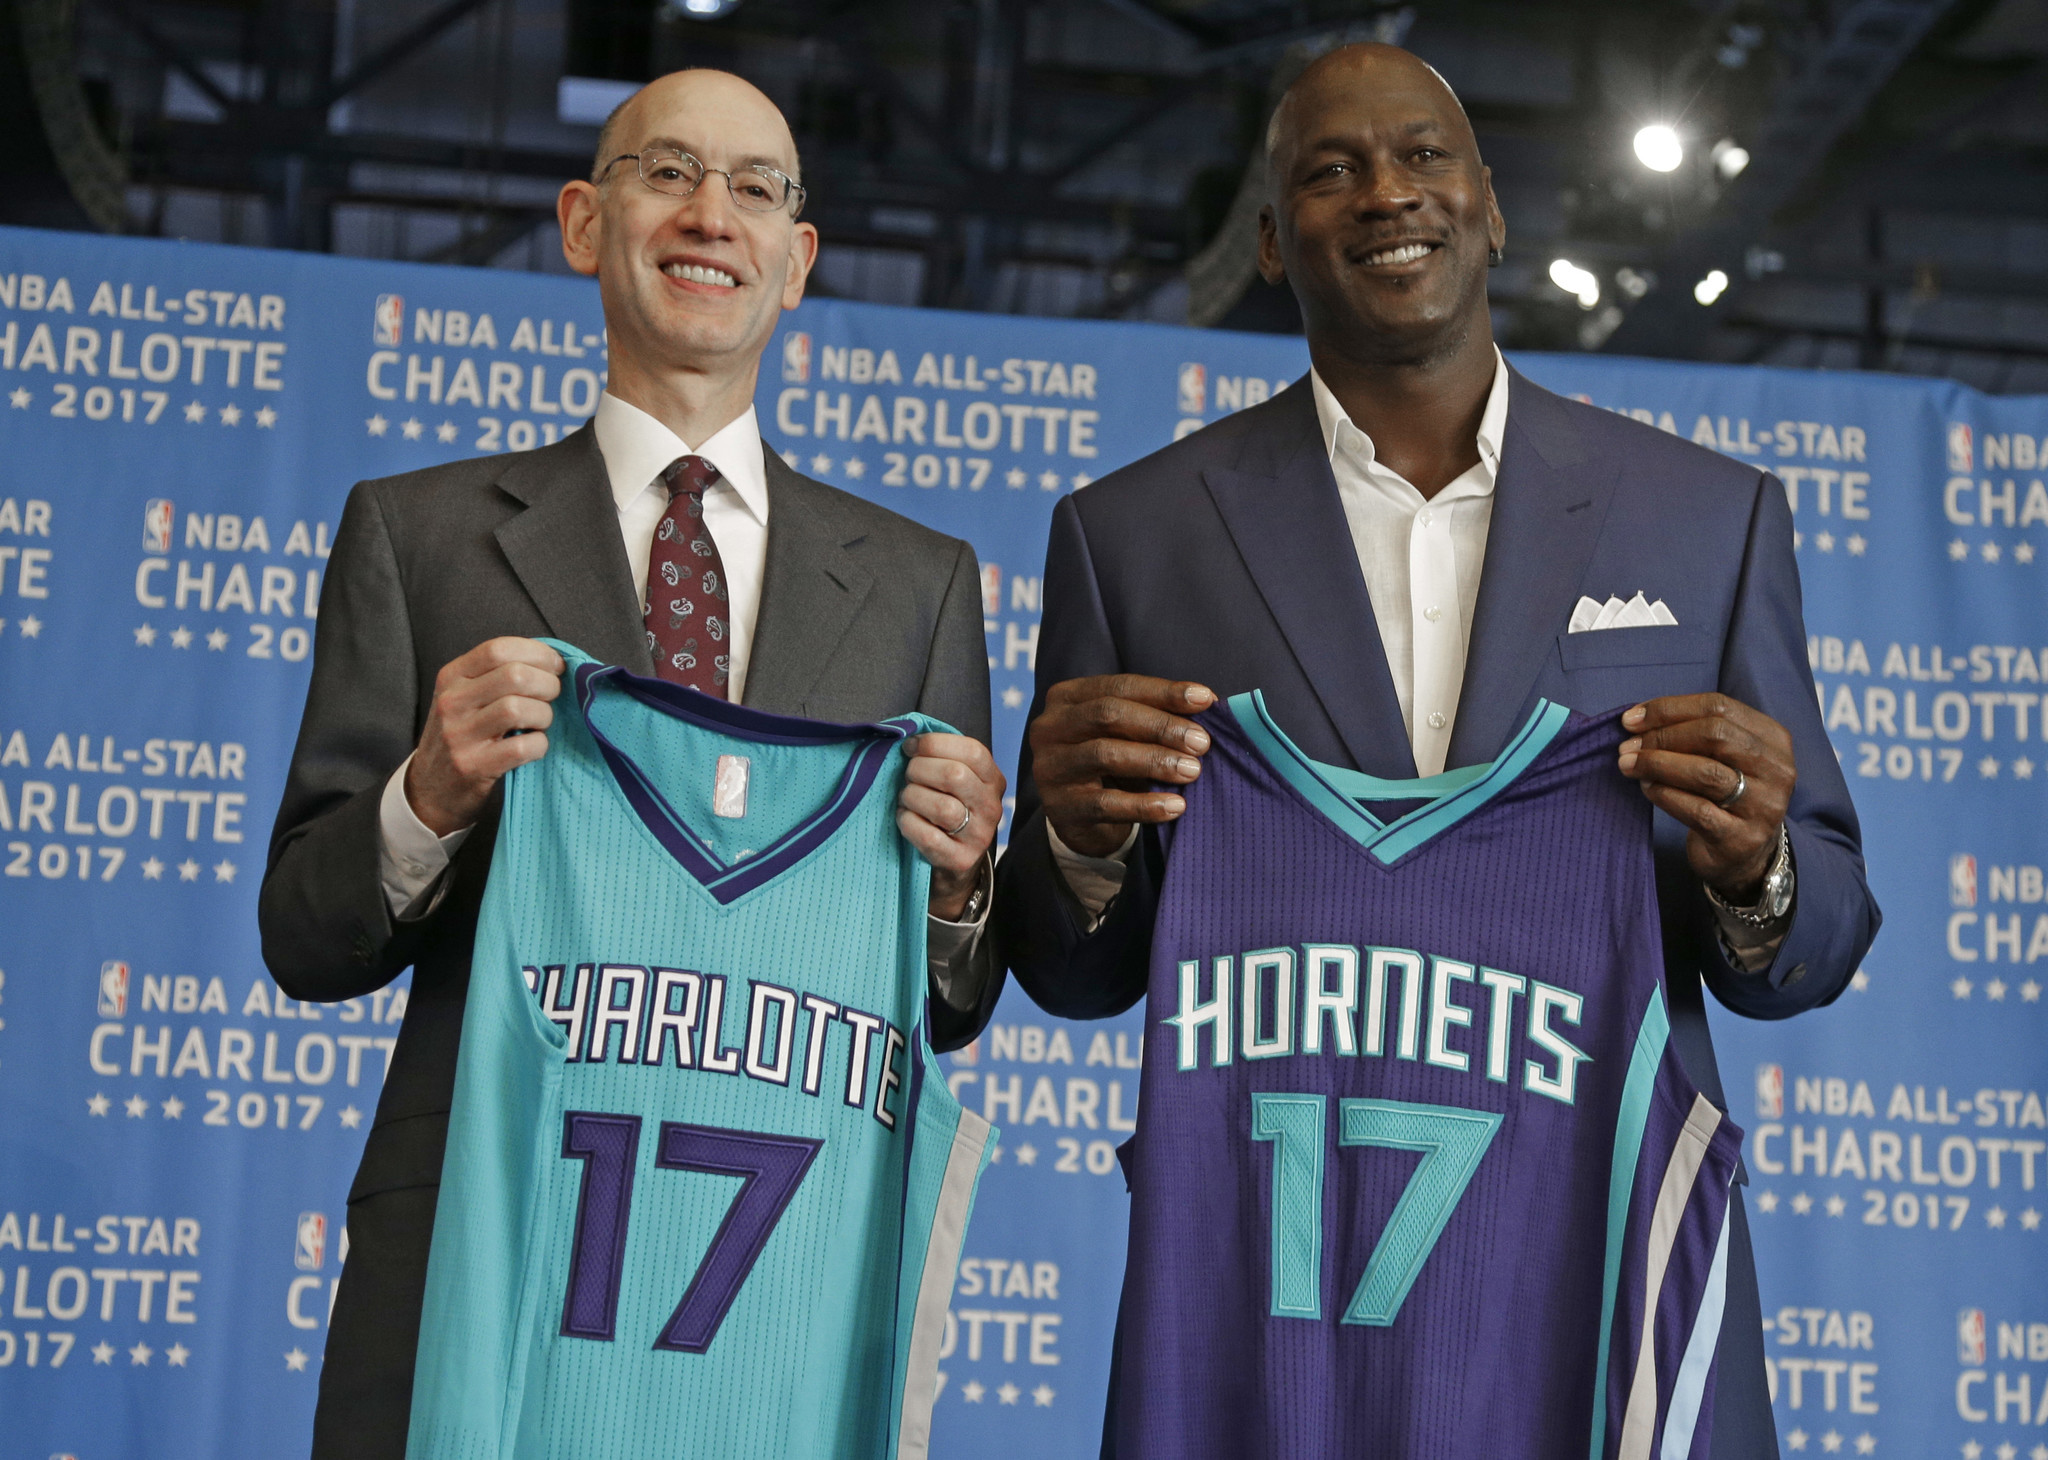 NBA awards 2019 All-Star Game to Charlotte - Chicago Tribune